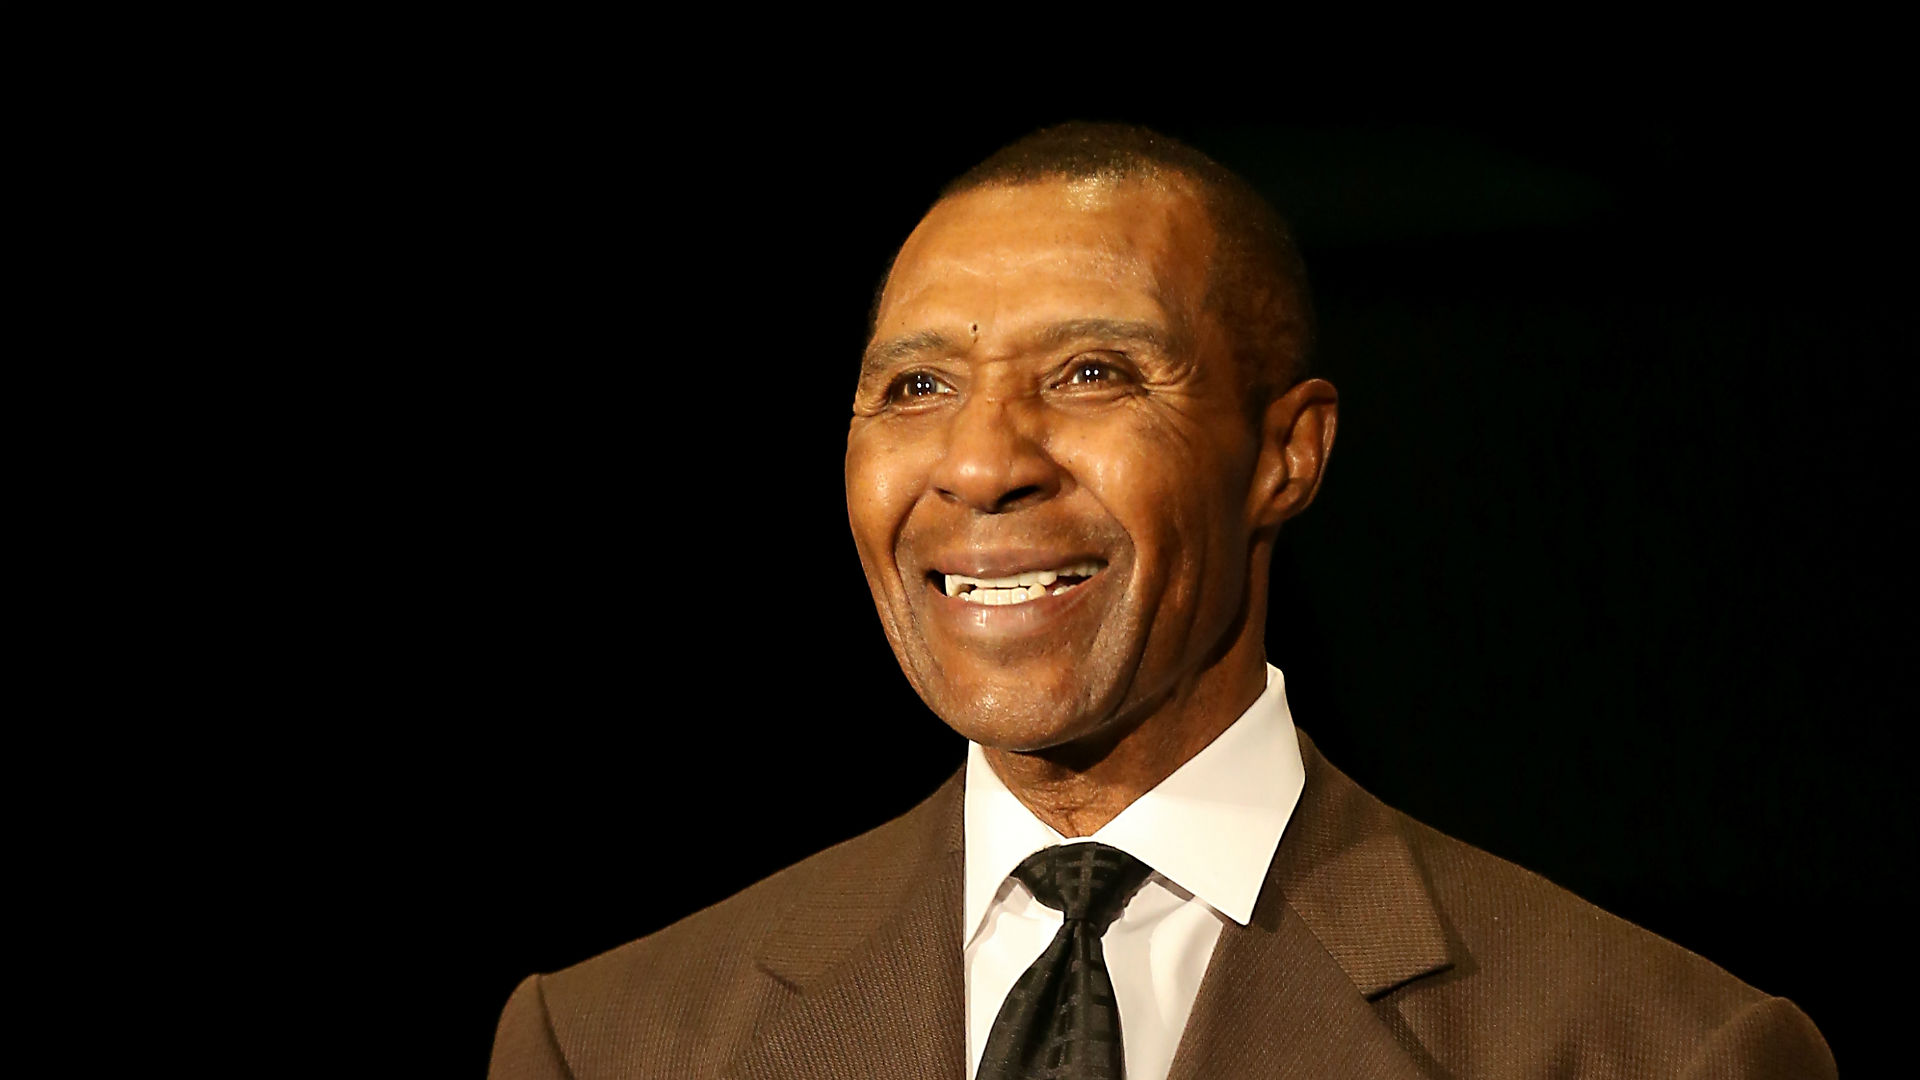 Jo Jo White receives long awaited Hall of Fame moment